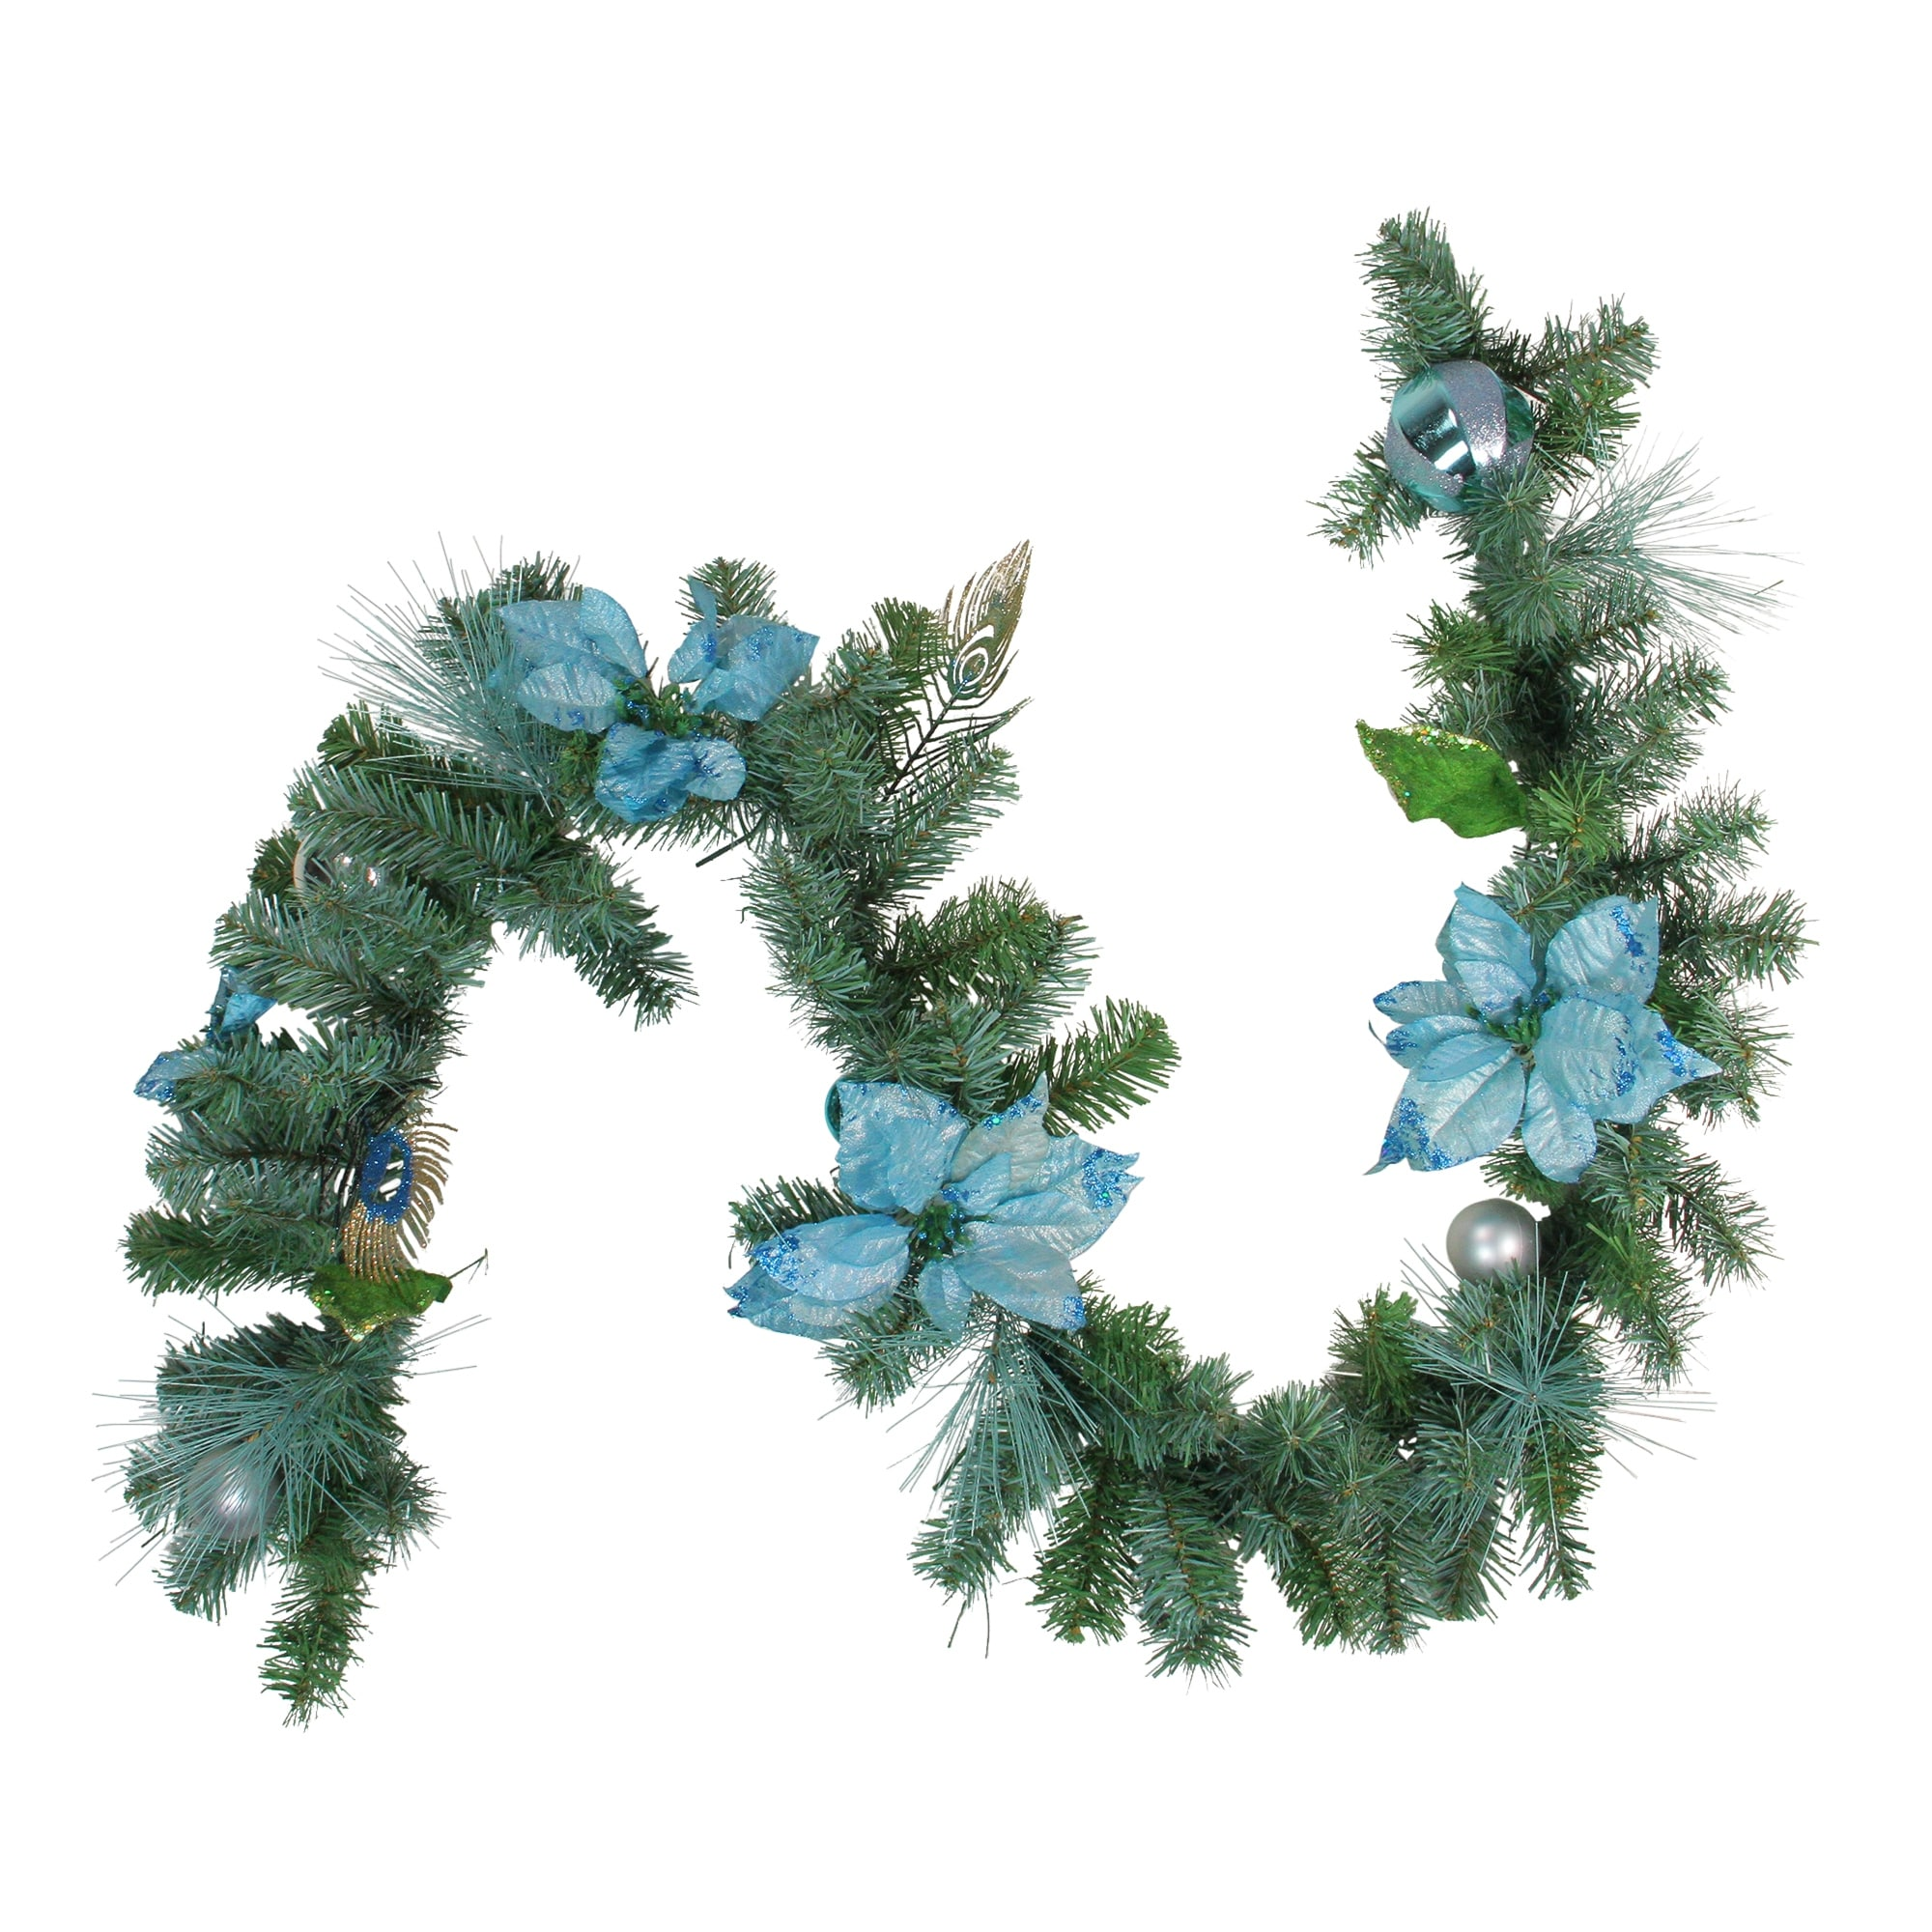 Artificial Christmas Garland.6 X 9 Blue And Silver Peacock And Poinsettia Artificial Christmas Garland Unlit N A